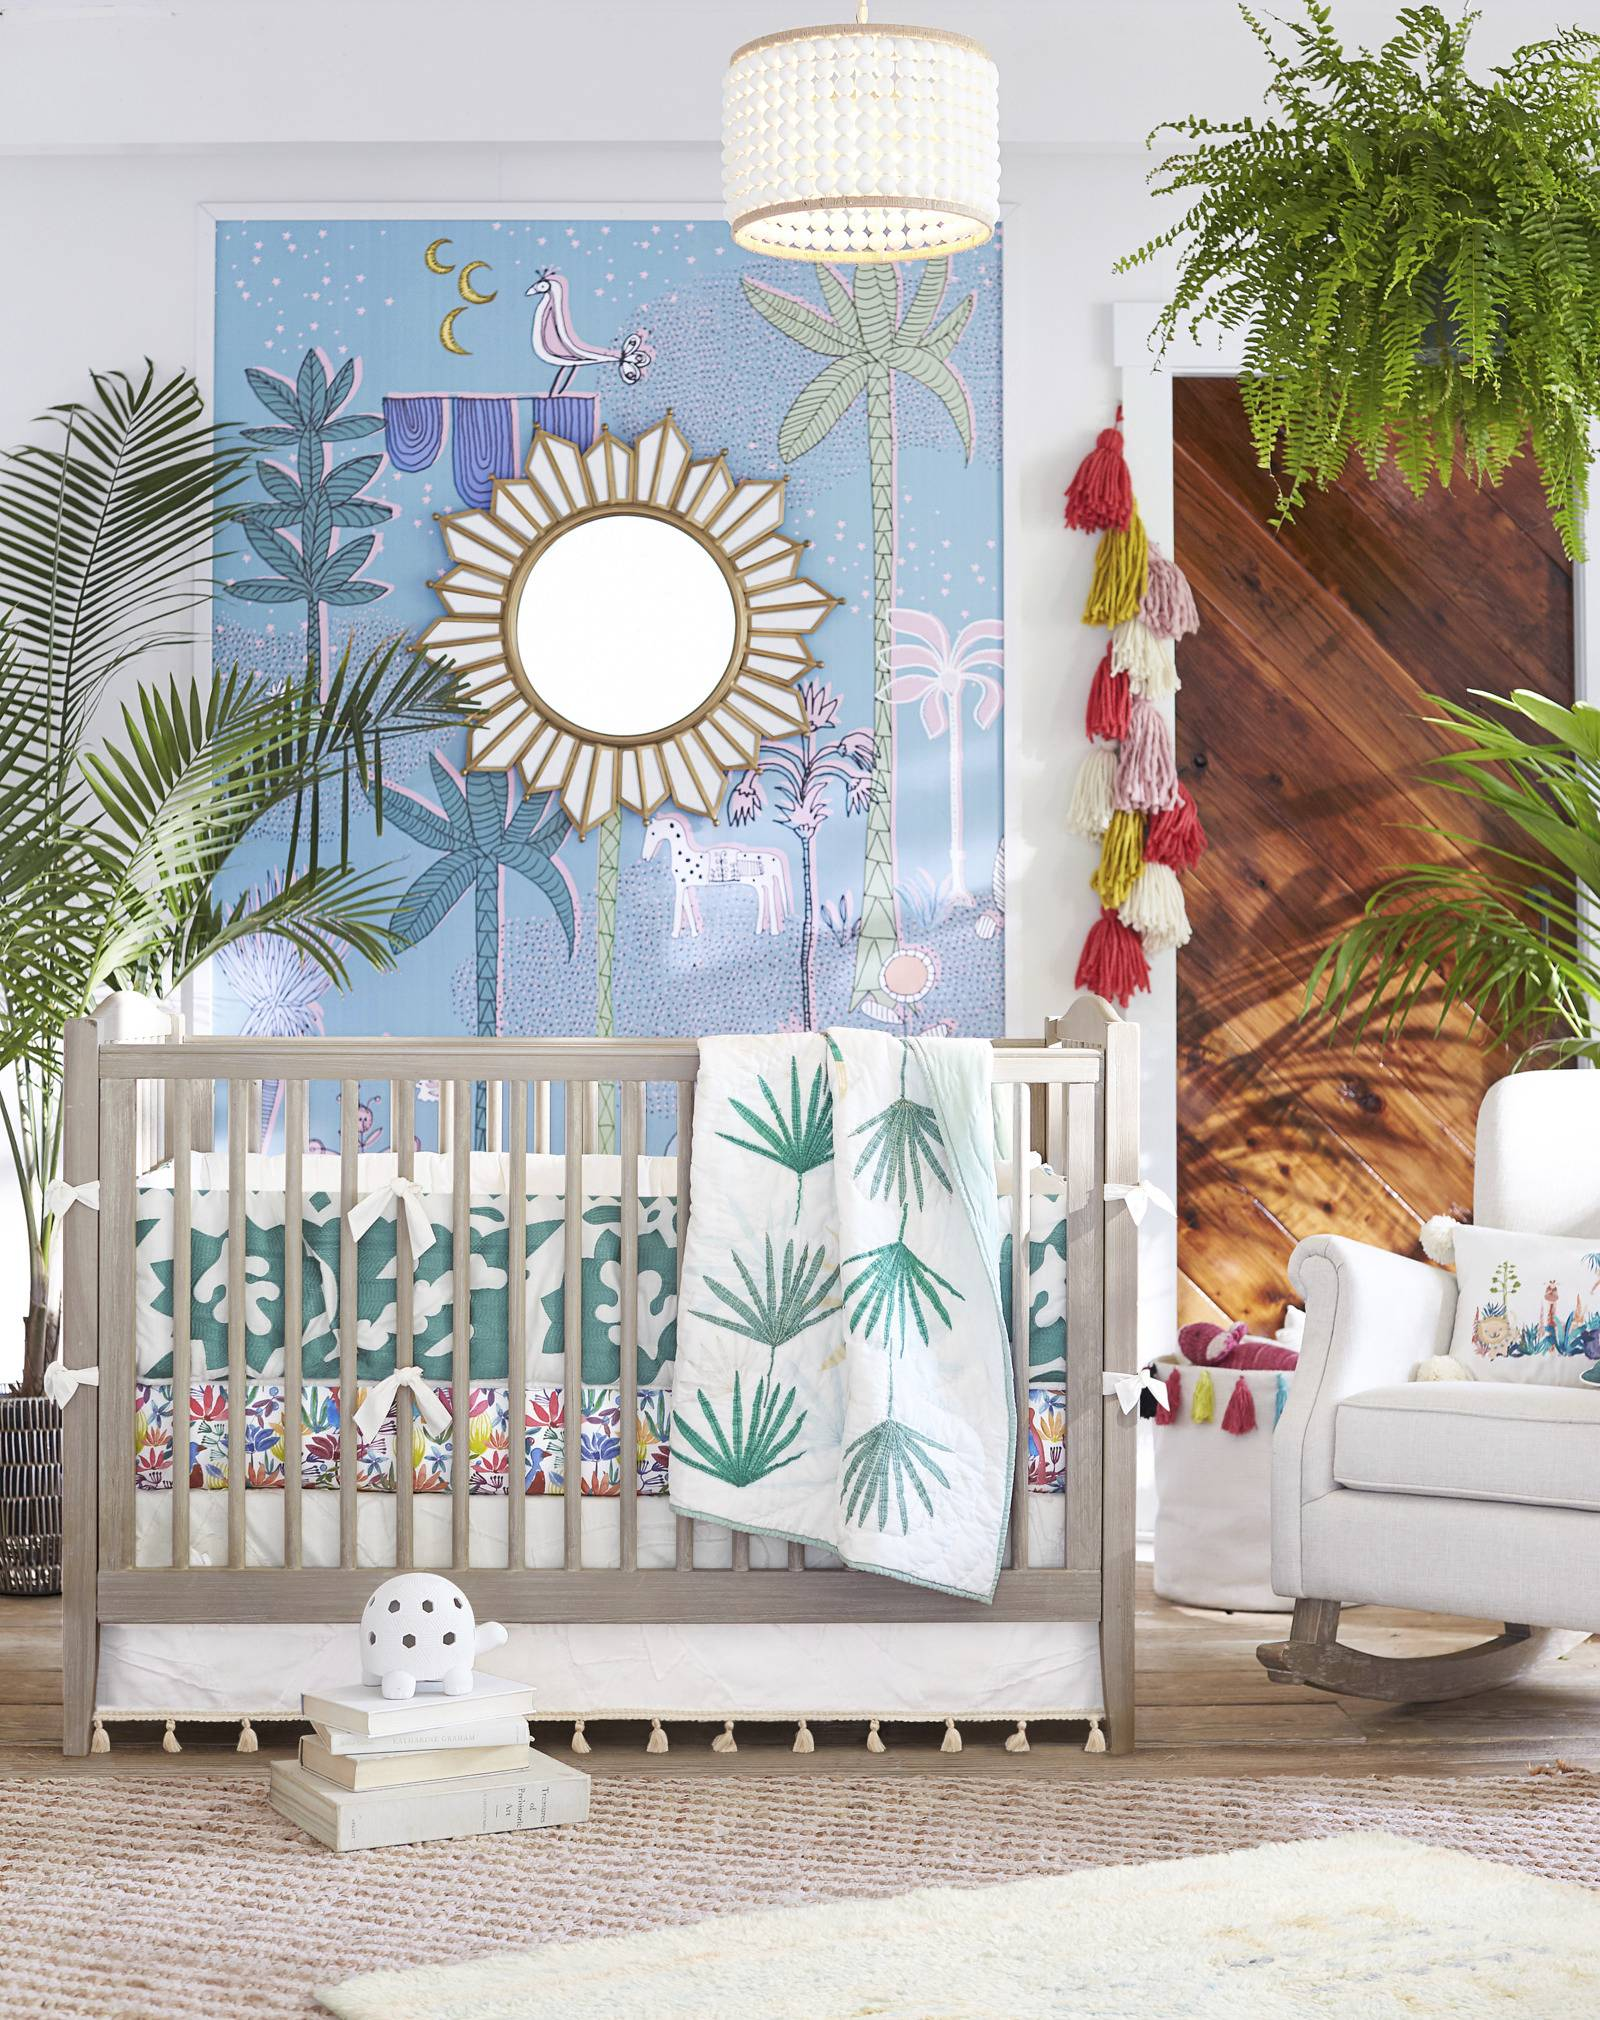 Designer and author Justina Blakeney brings her imaginative, eclectic and playful style to Pottery Barn Kids. Bold colors and hand-drawn patterns are part of Blakeney's signature bohemian style, inspired by her travels and love of nature.